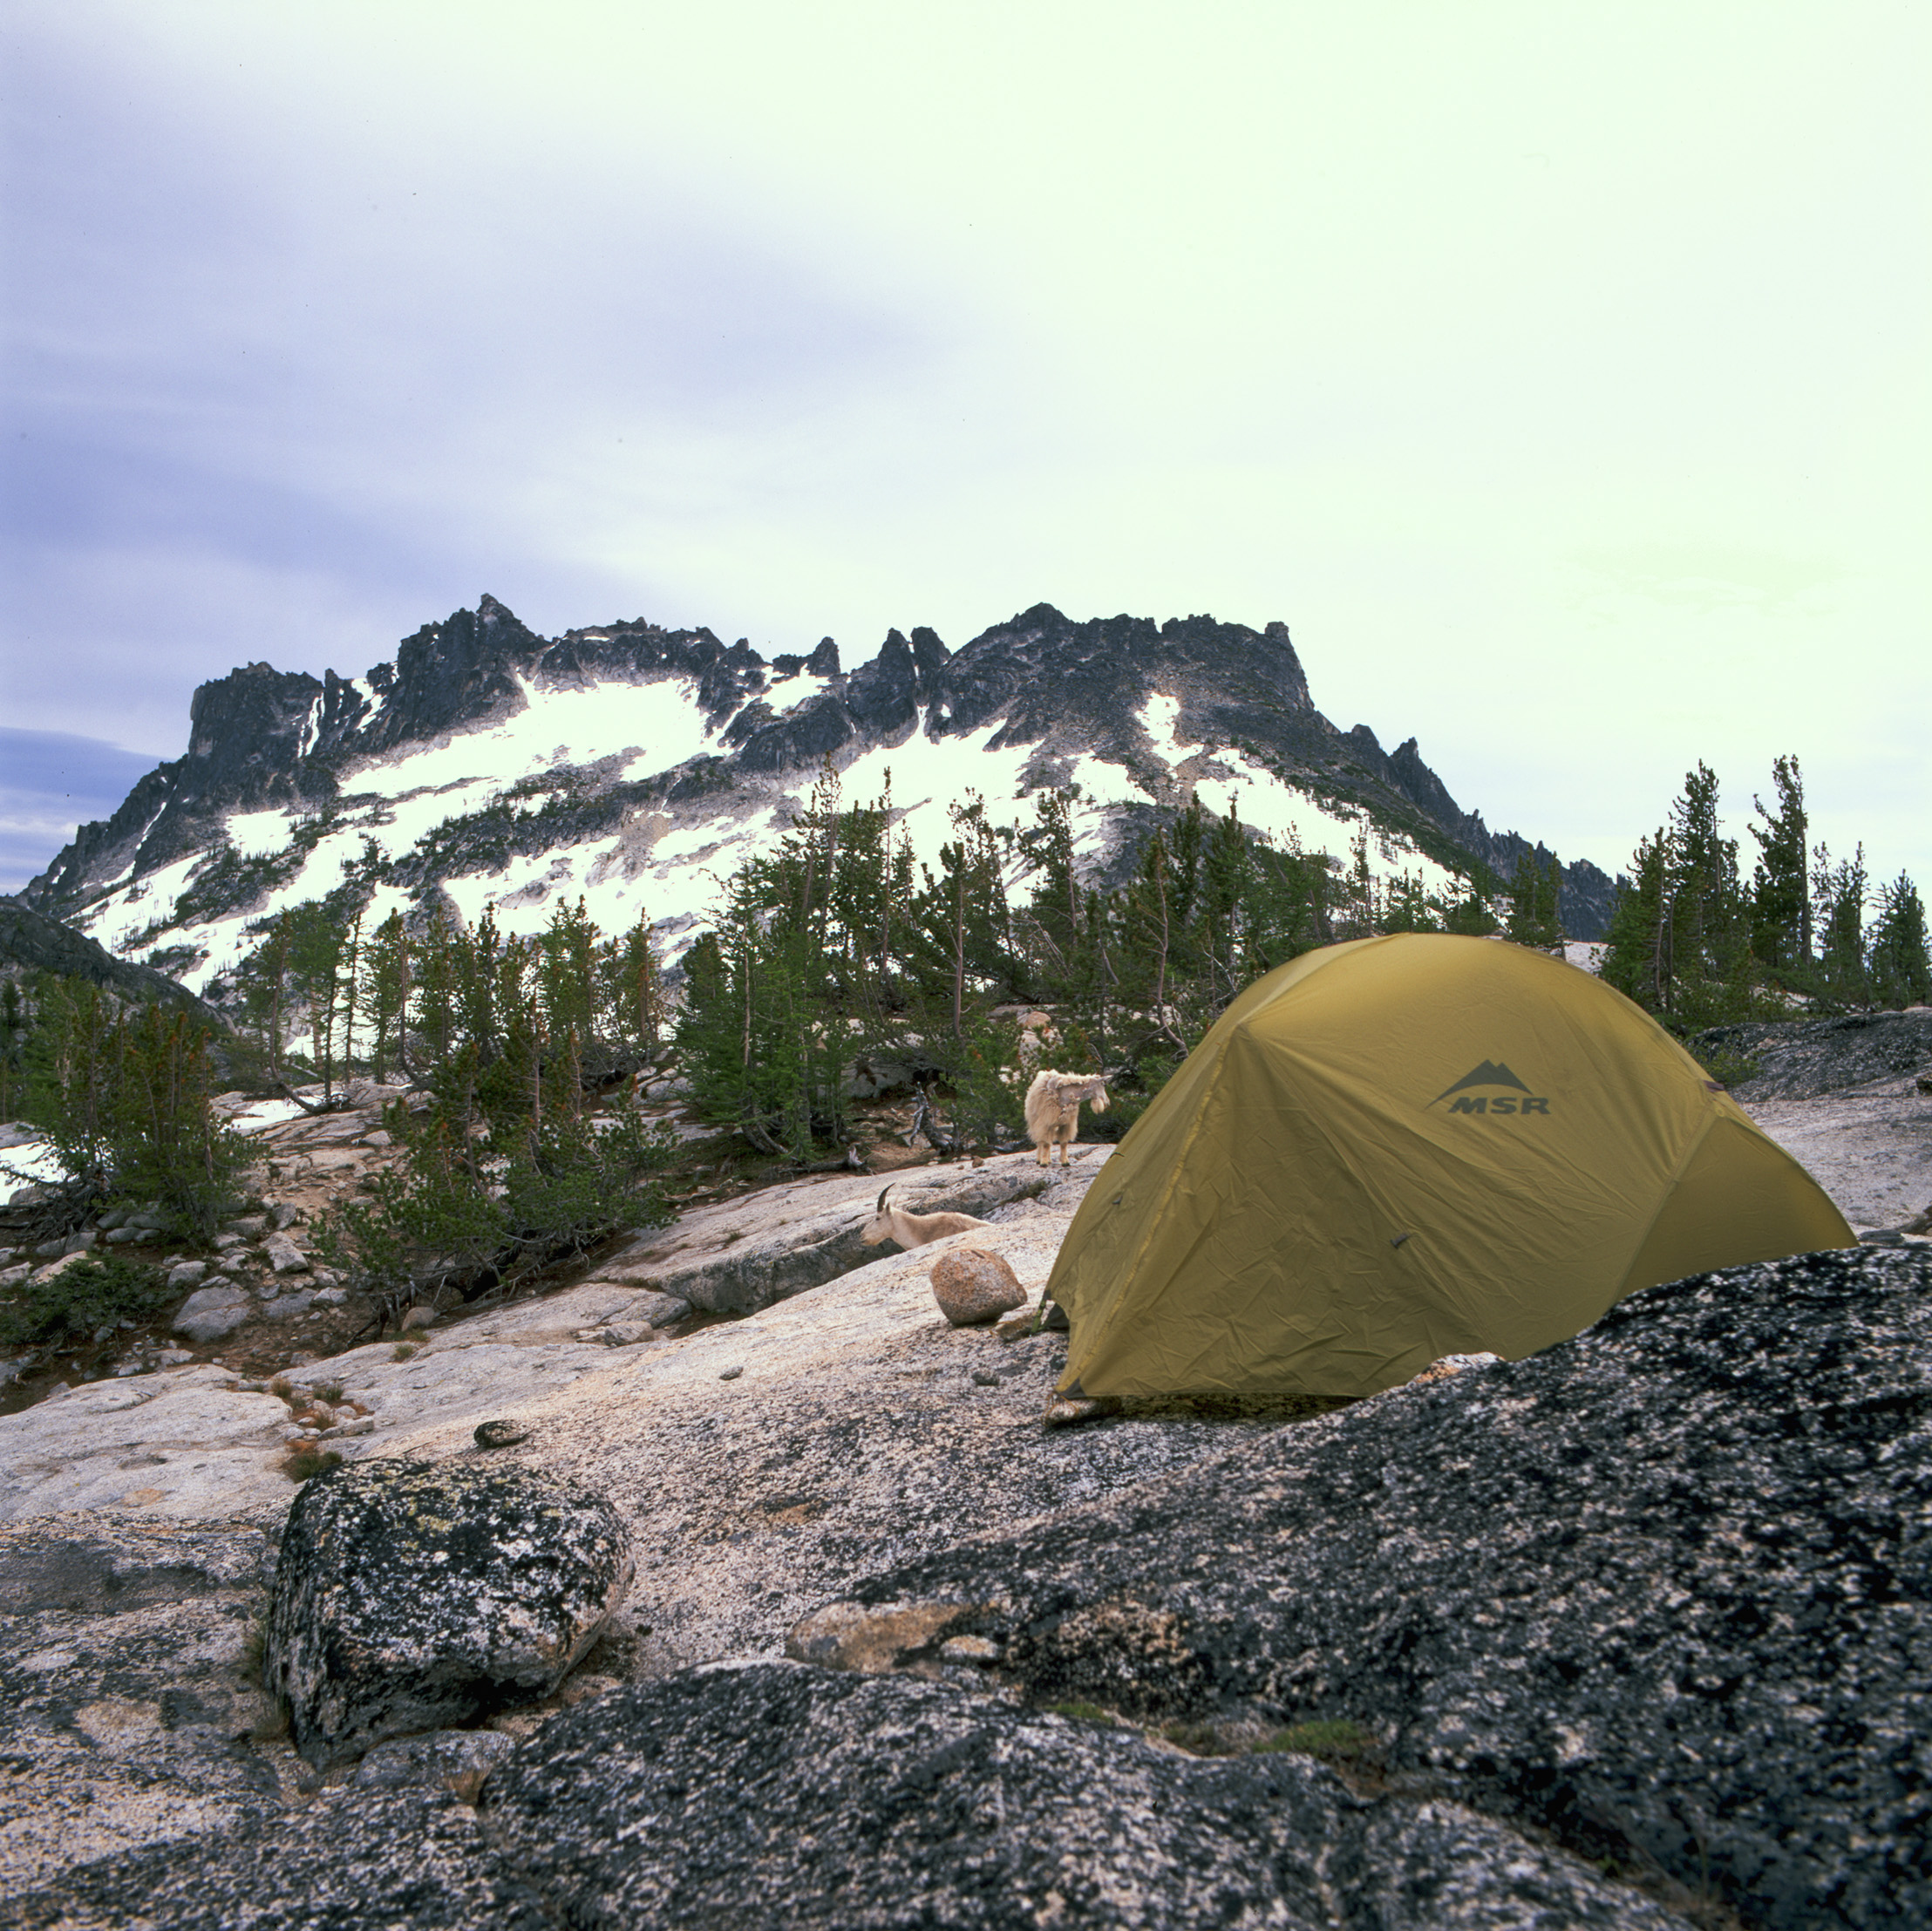 Coexist - My MSR tent at the top of a granite dome with Mt. McClellan in the background. As you can see, this was also home to a herd of mountain goats. This is where my tent tried to blow off the mountain.